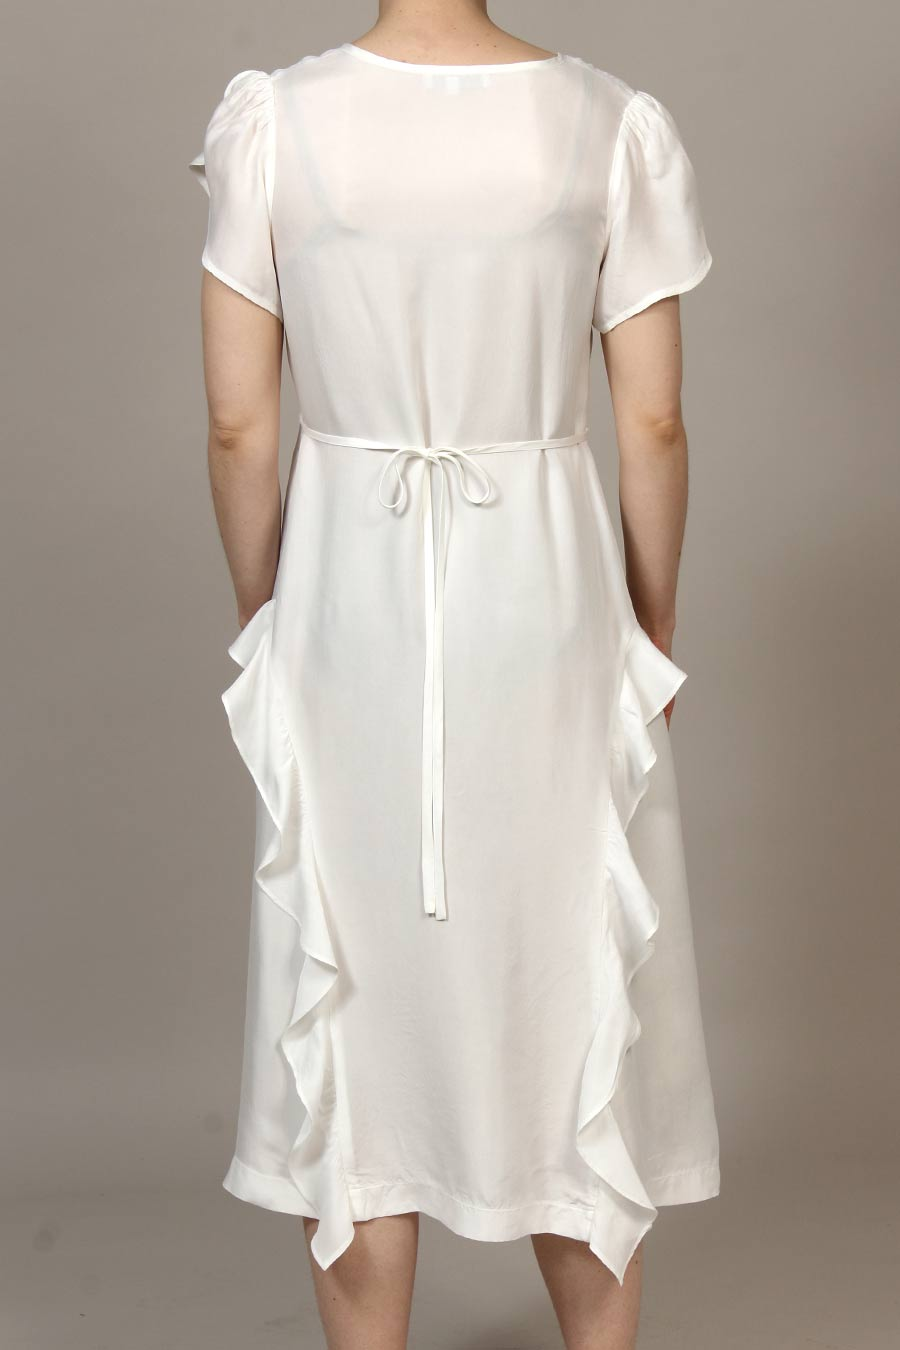 Cupro Parachute Bloomfield Dress - Ivory